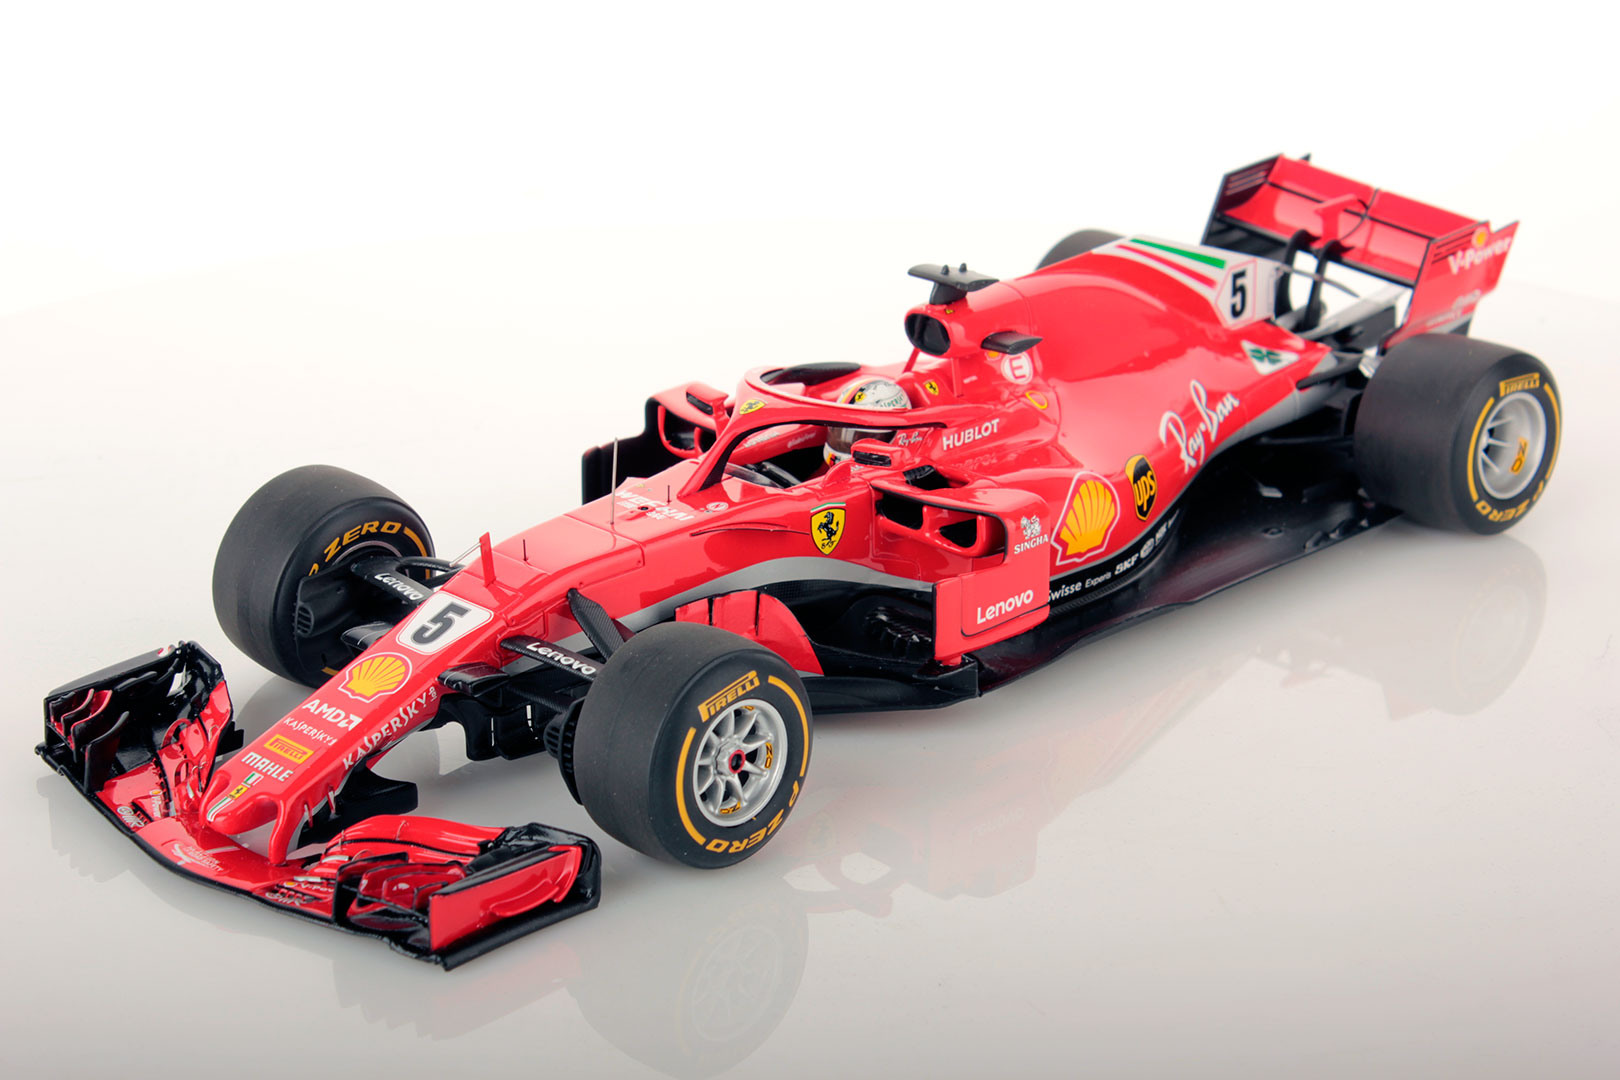 ferrari sf71h australian gp 2018 sebastian vettel winner 1. Black Bedroom Furniture Sets. Home Design Ideas